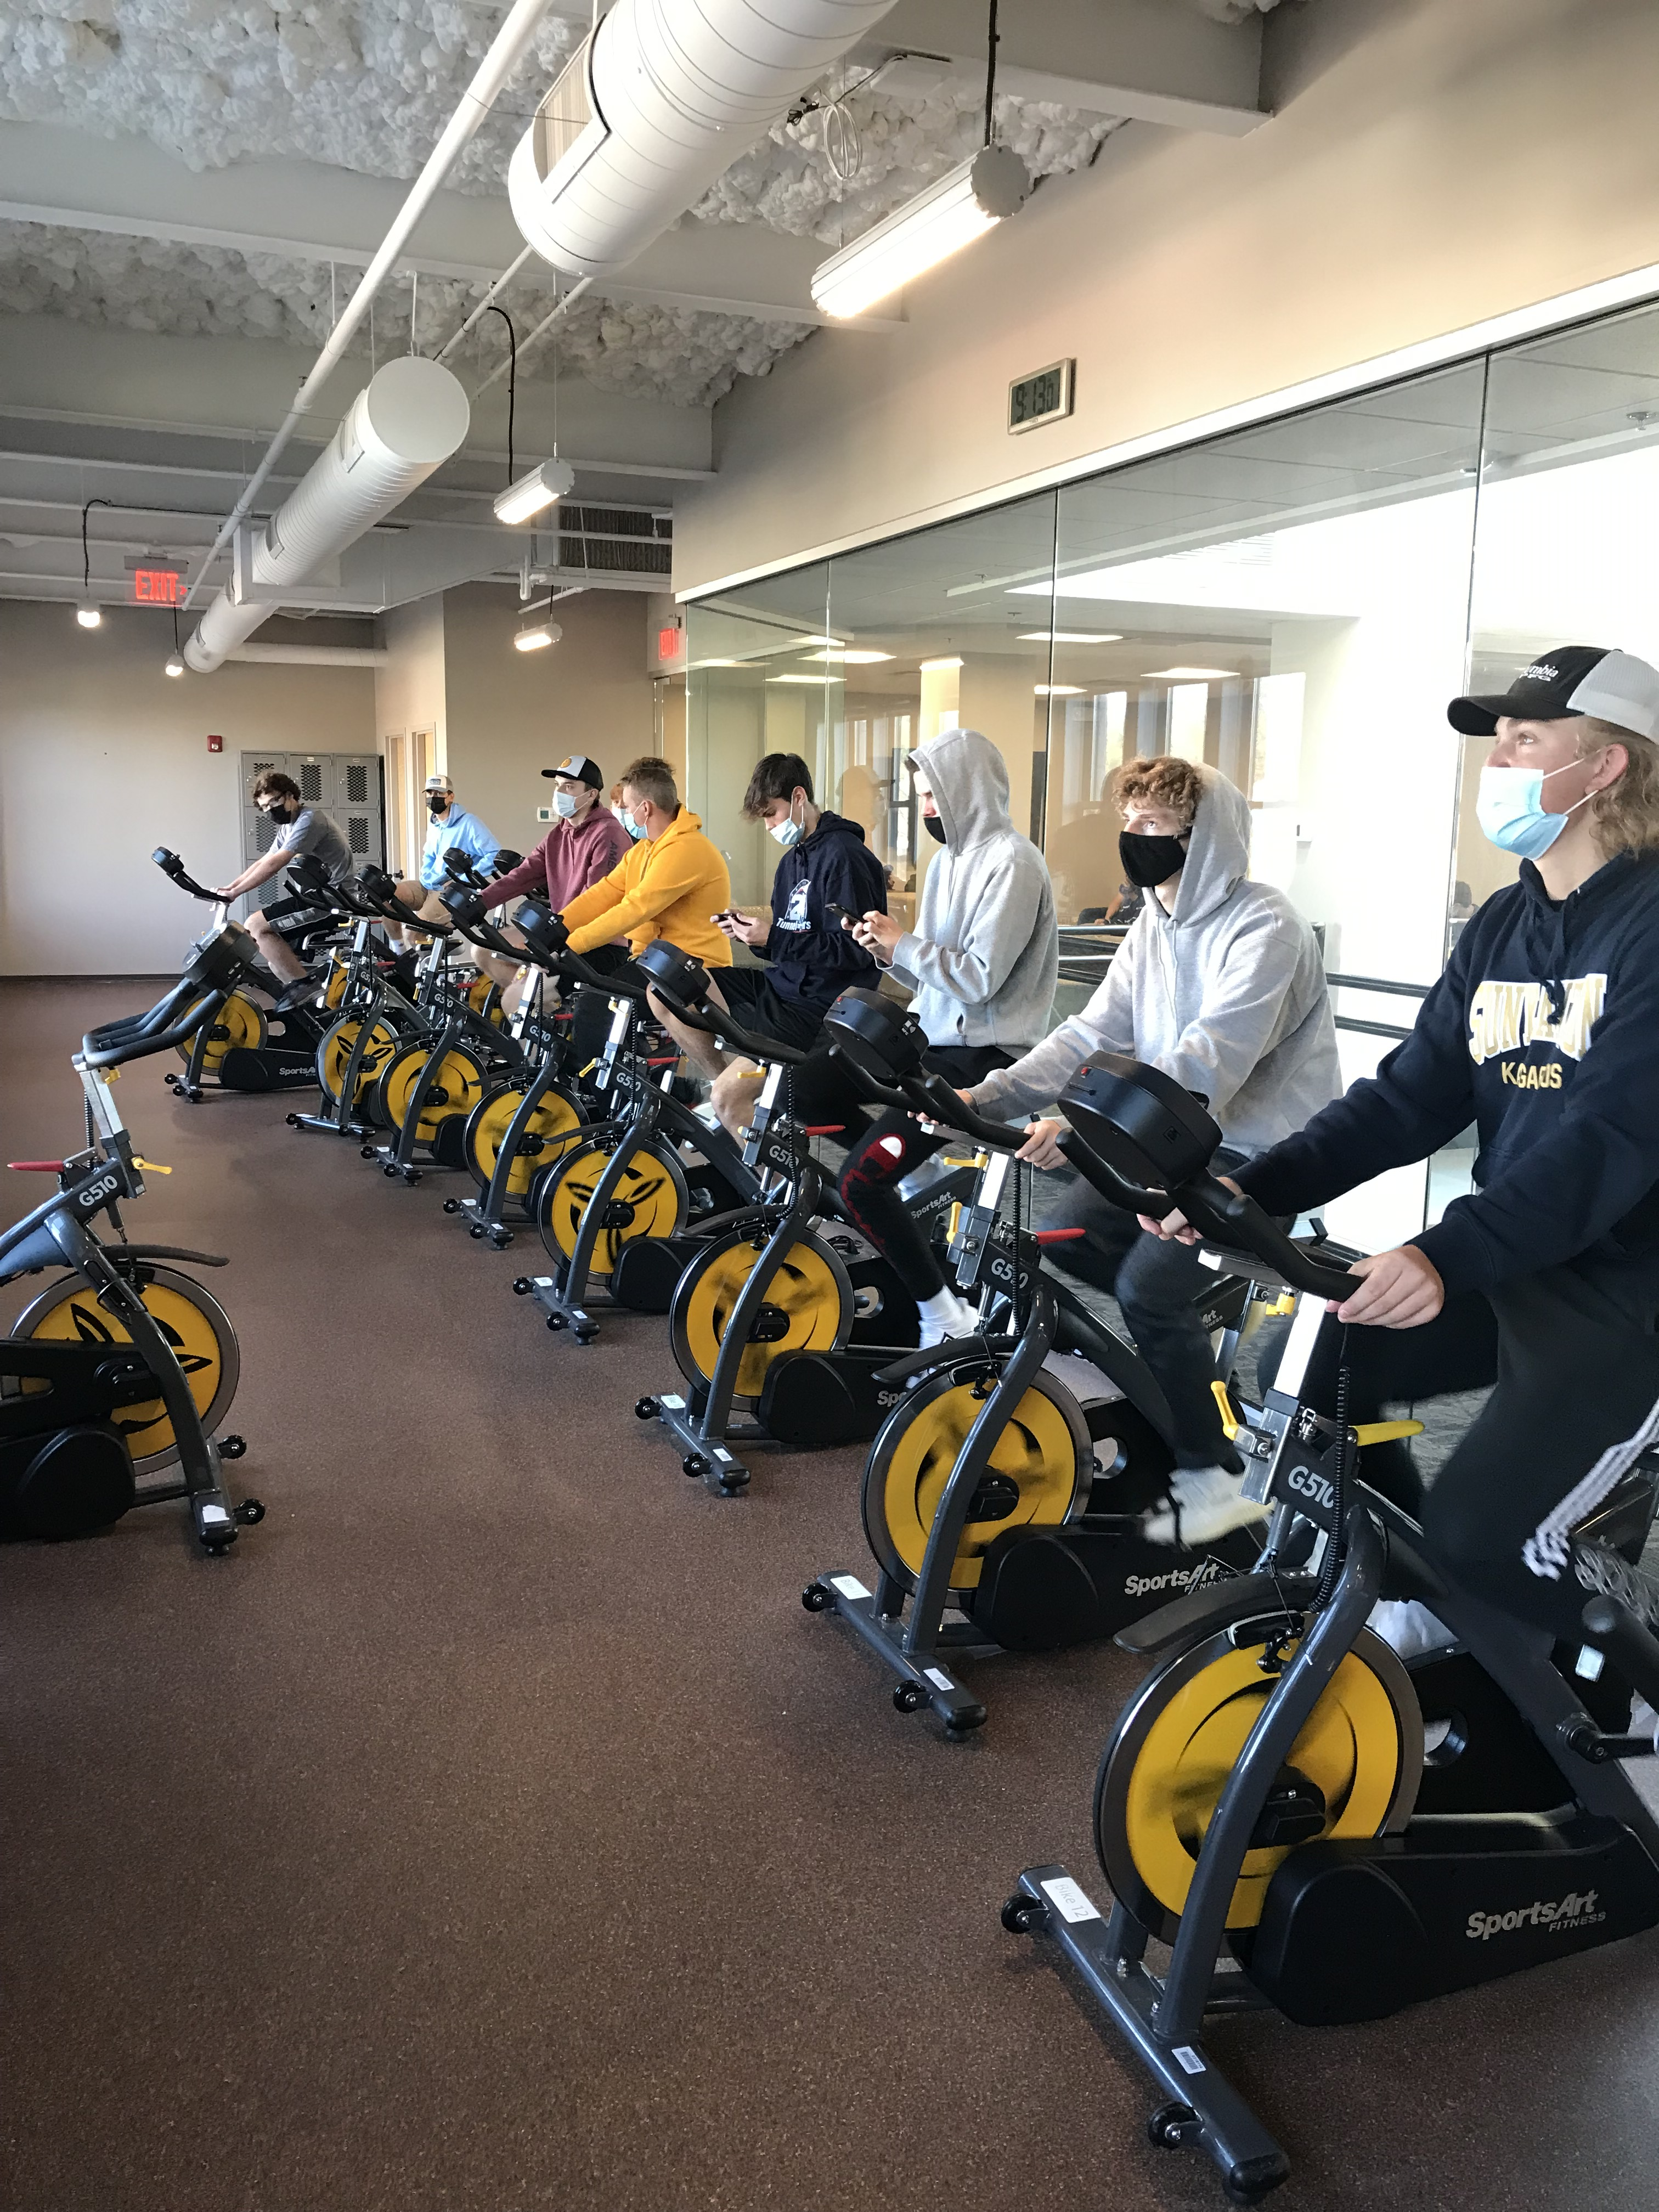 Students on a row of exercise bikes that generate electricity.